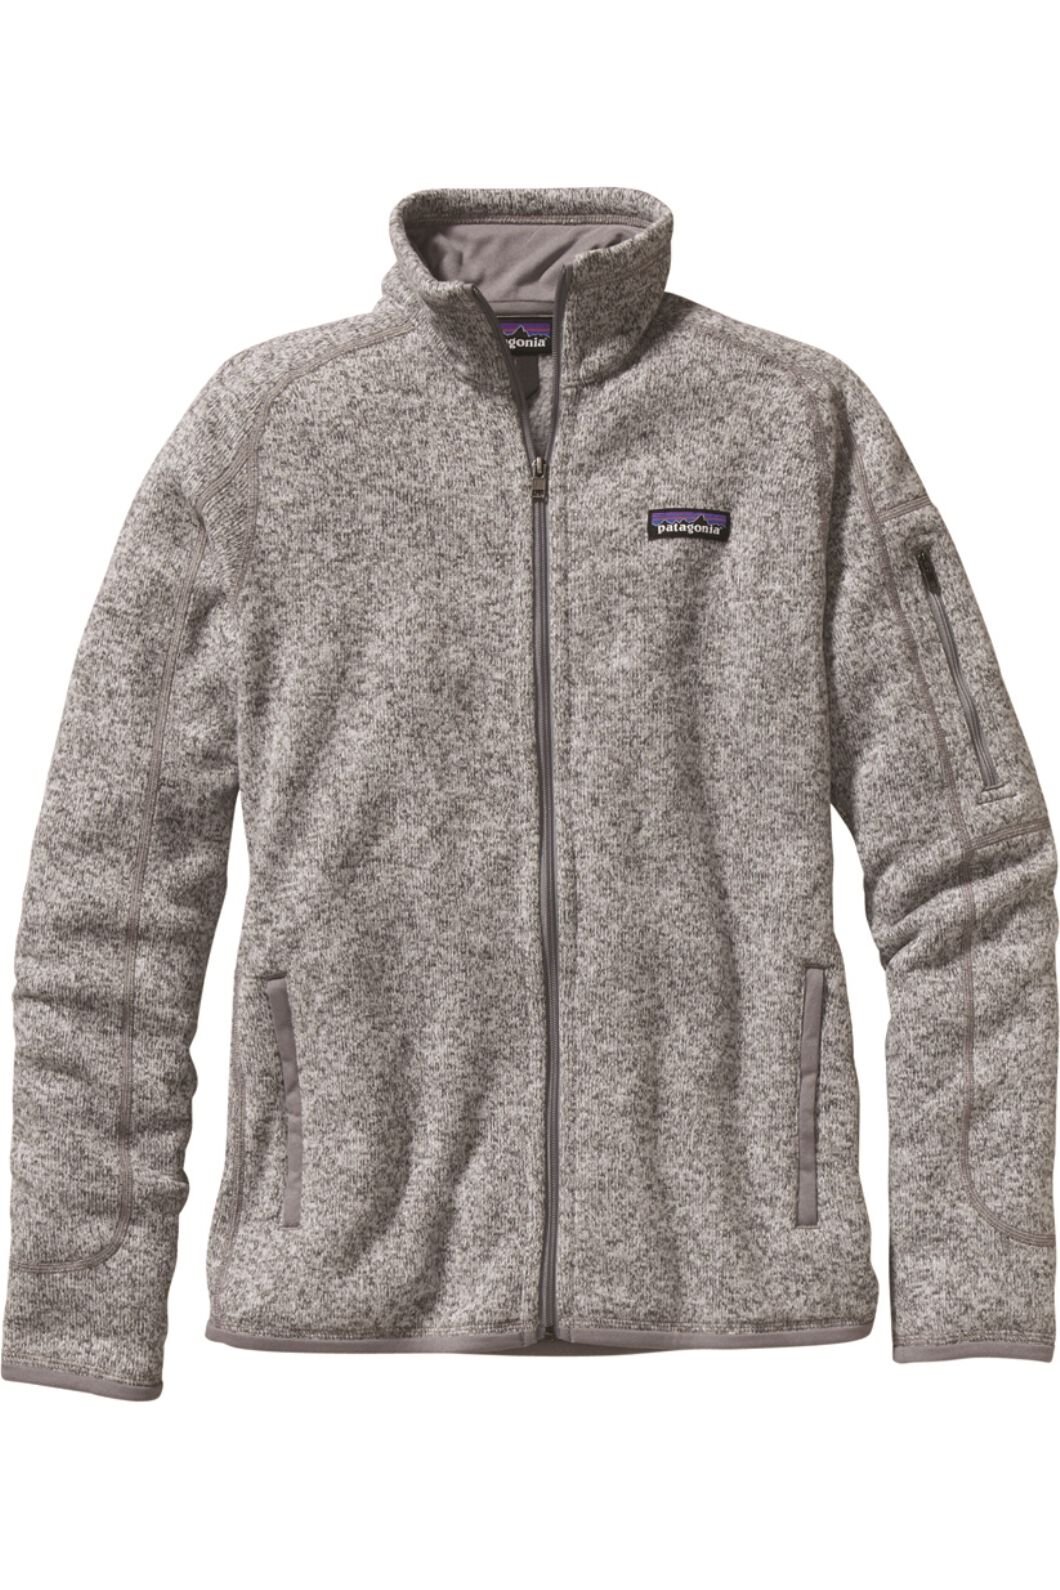 Patagonia Women's Better Sweater Jacket Birch, BIRCH WHITE, hi-res